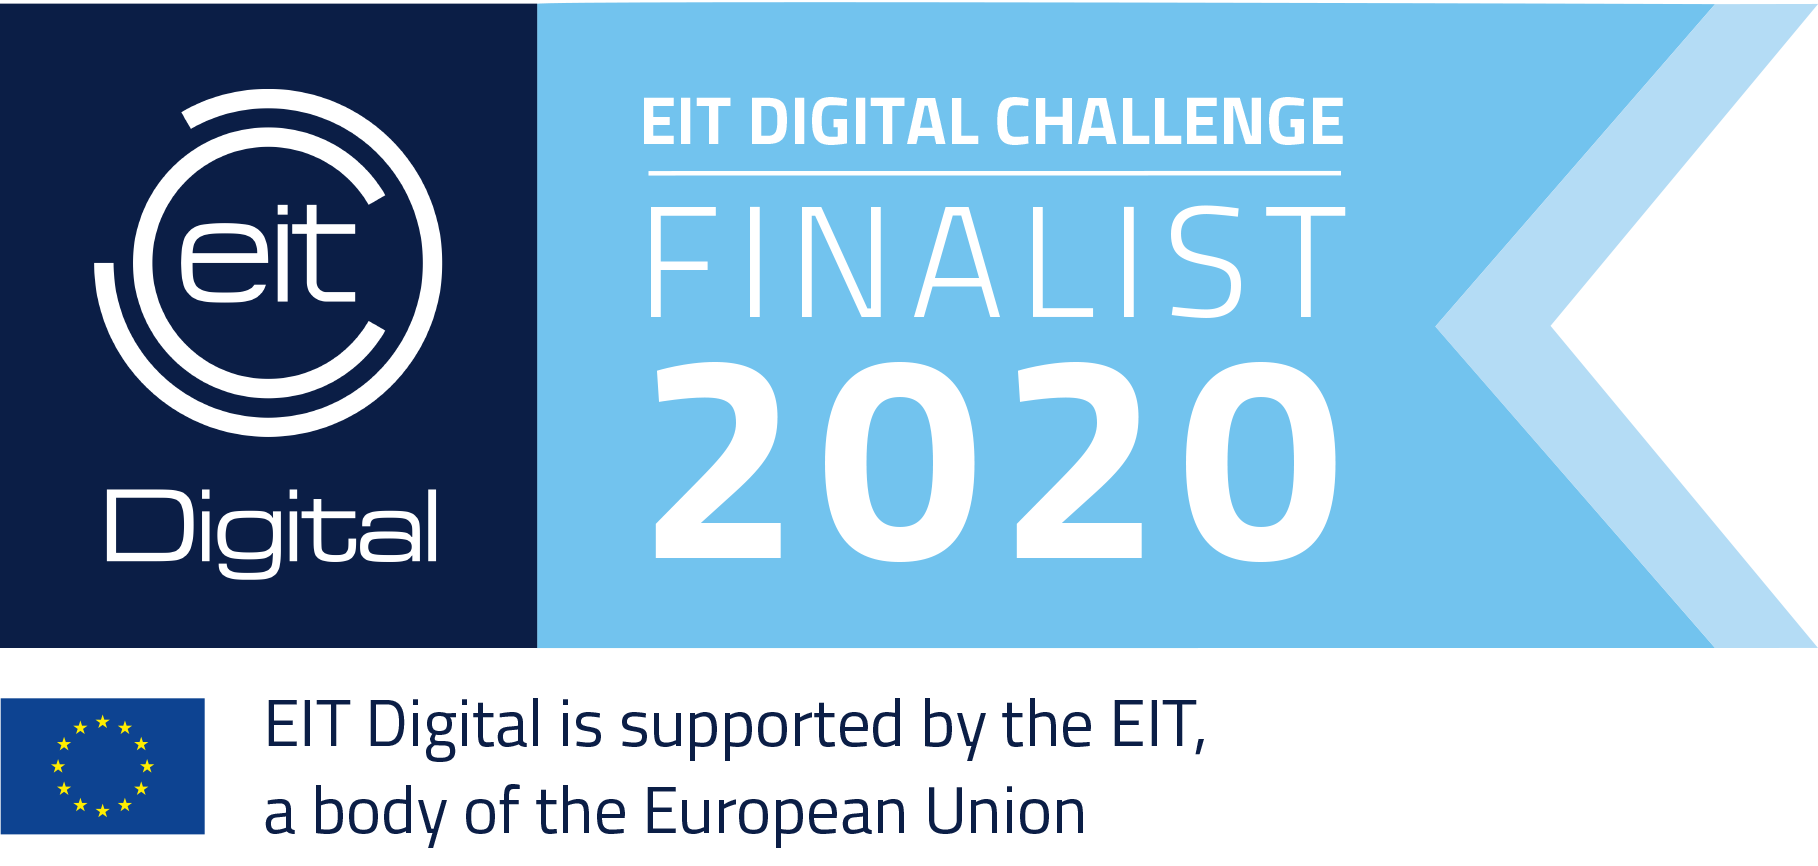 EIT Digital is part of the EIT (European Institute of Innovation and Technology), an EU body which fosters innovation and entrepreneurship.